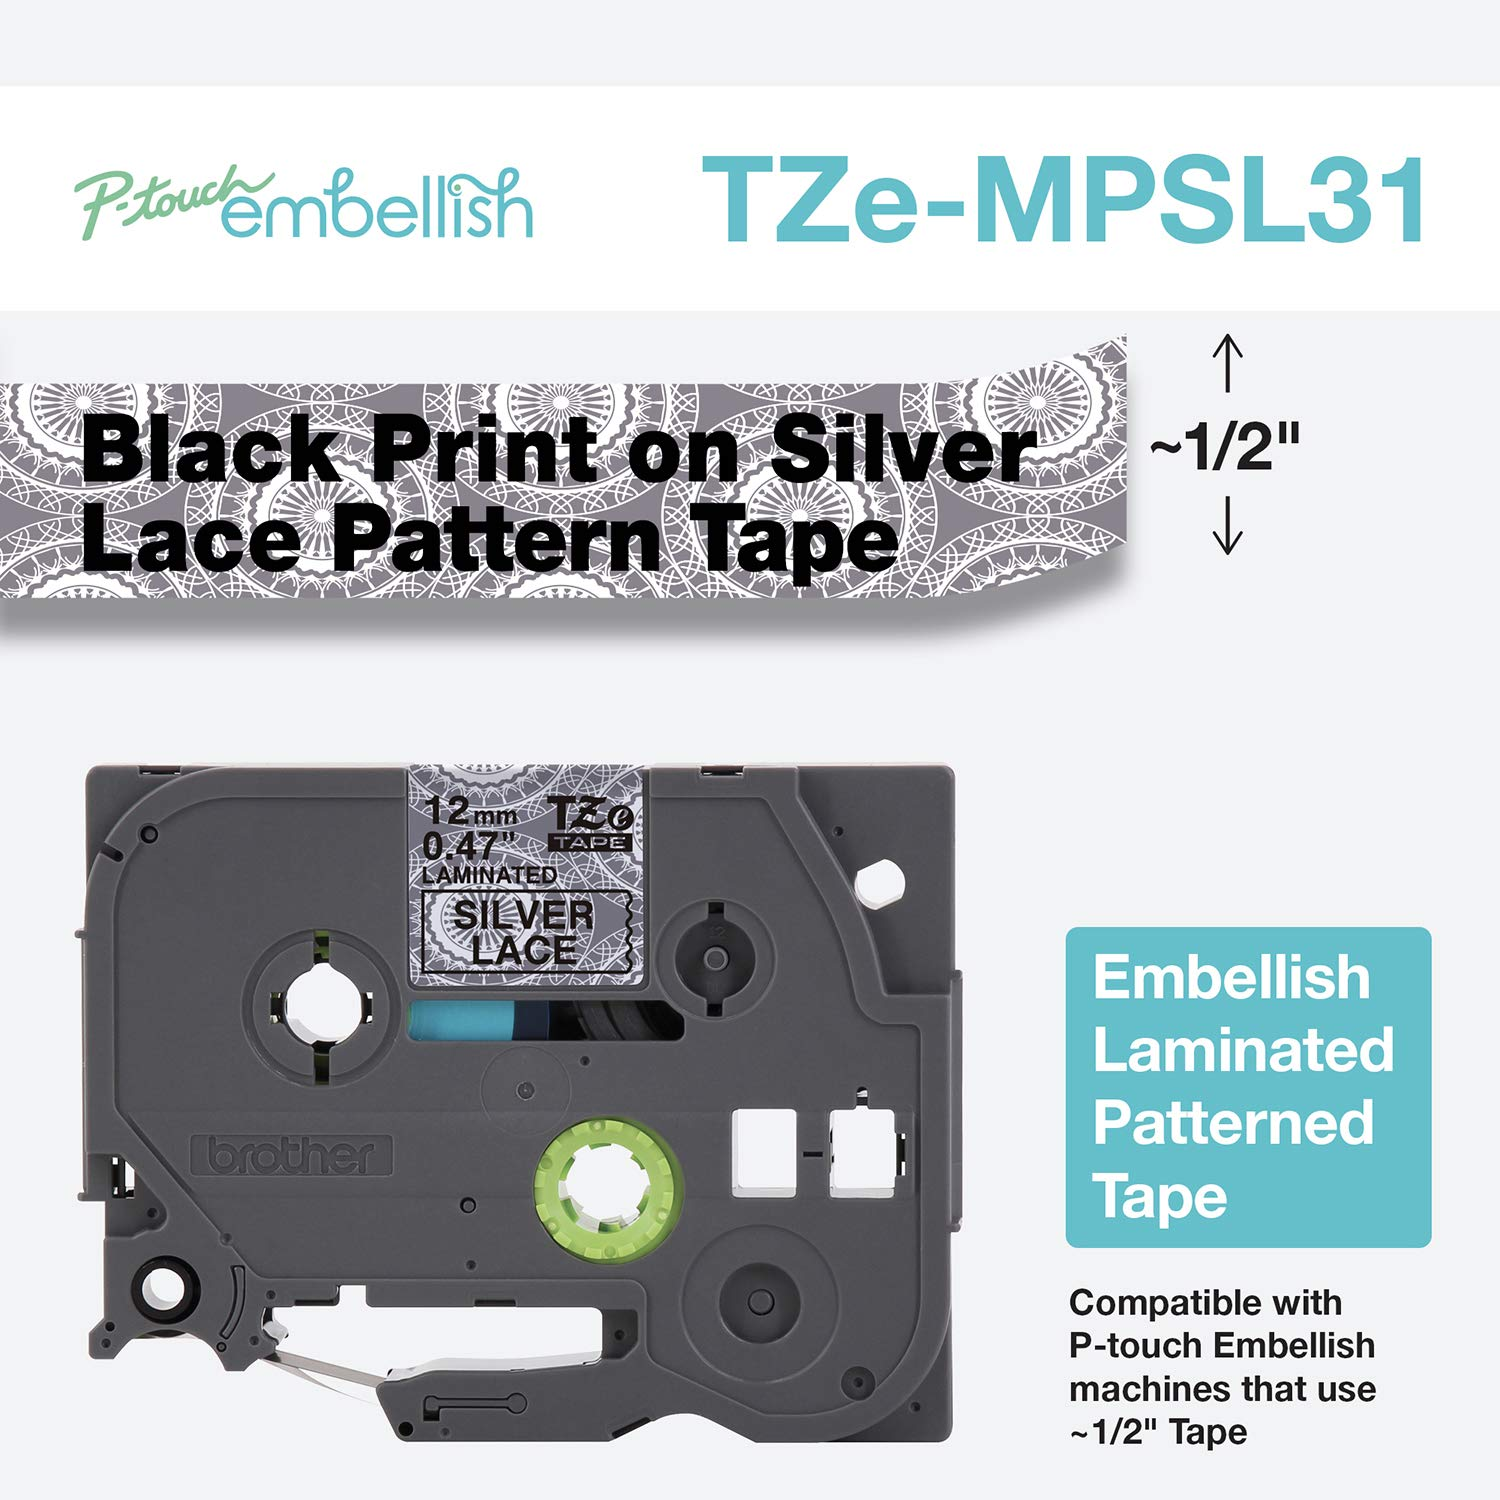 Brother P-Touch Embellish Print Pattern Tape, Black on Silver Lace